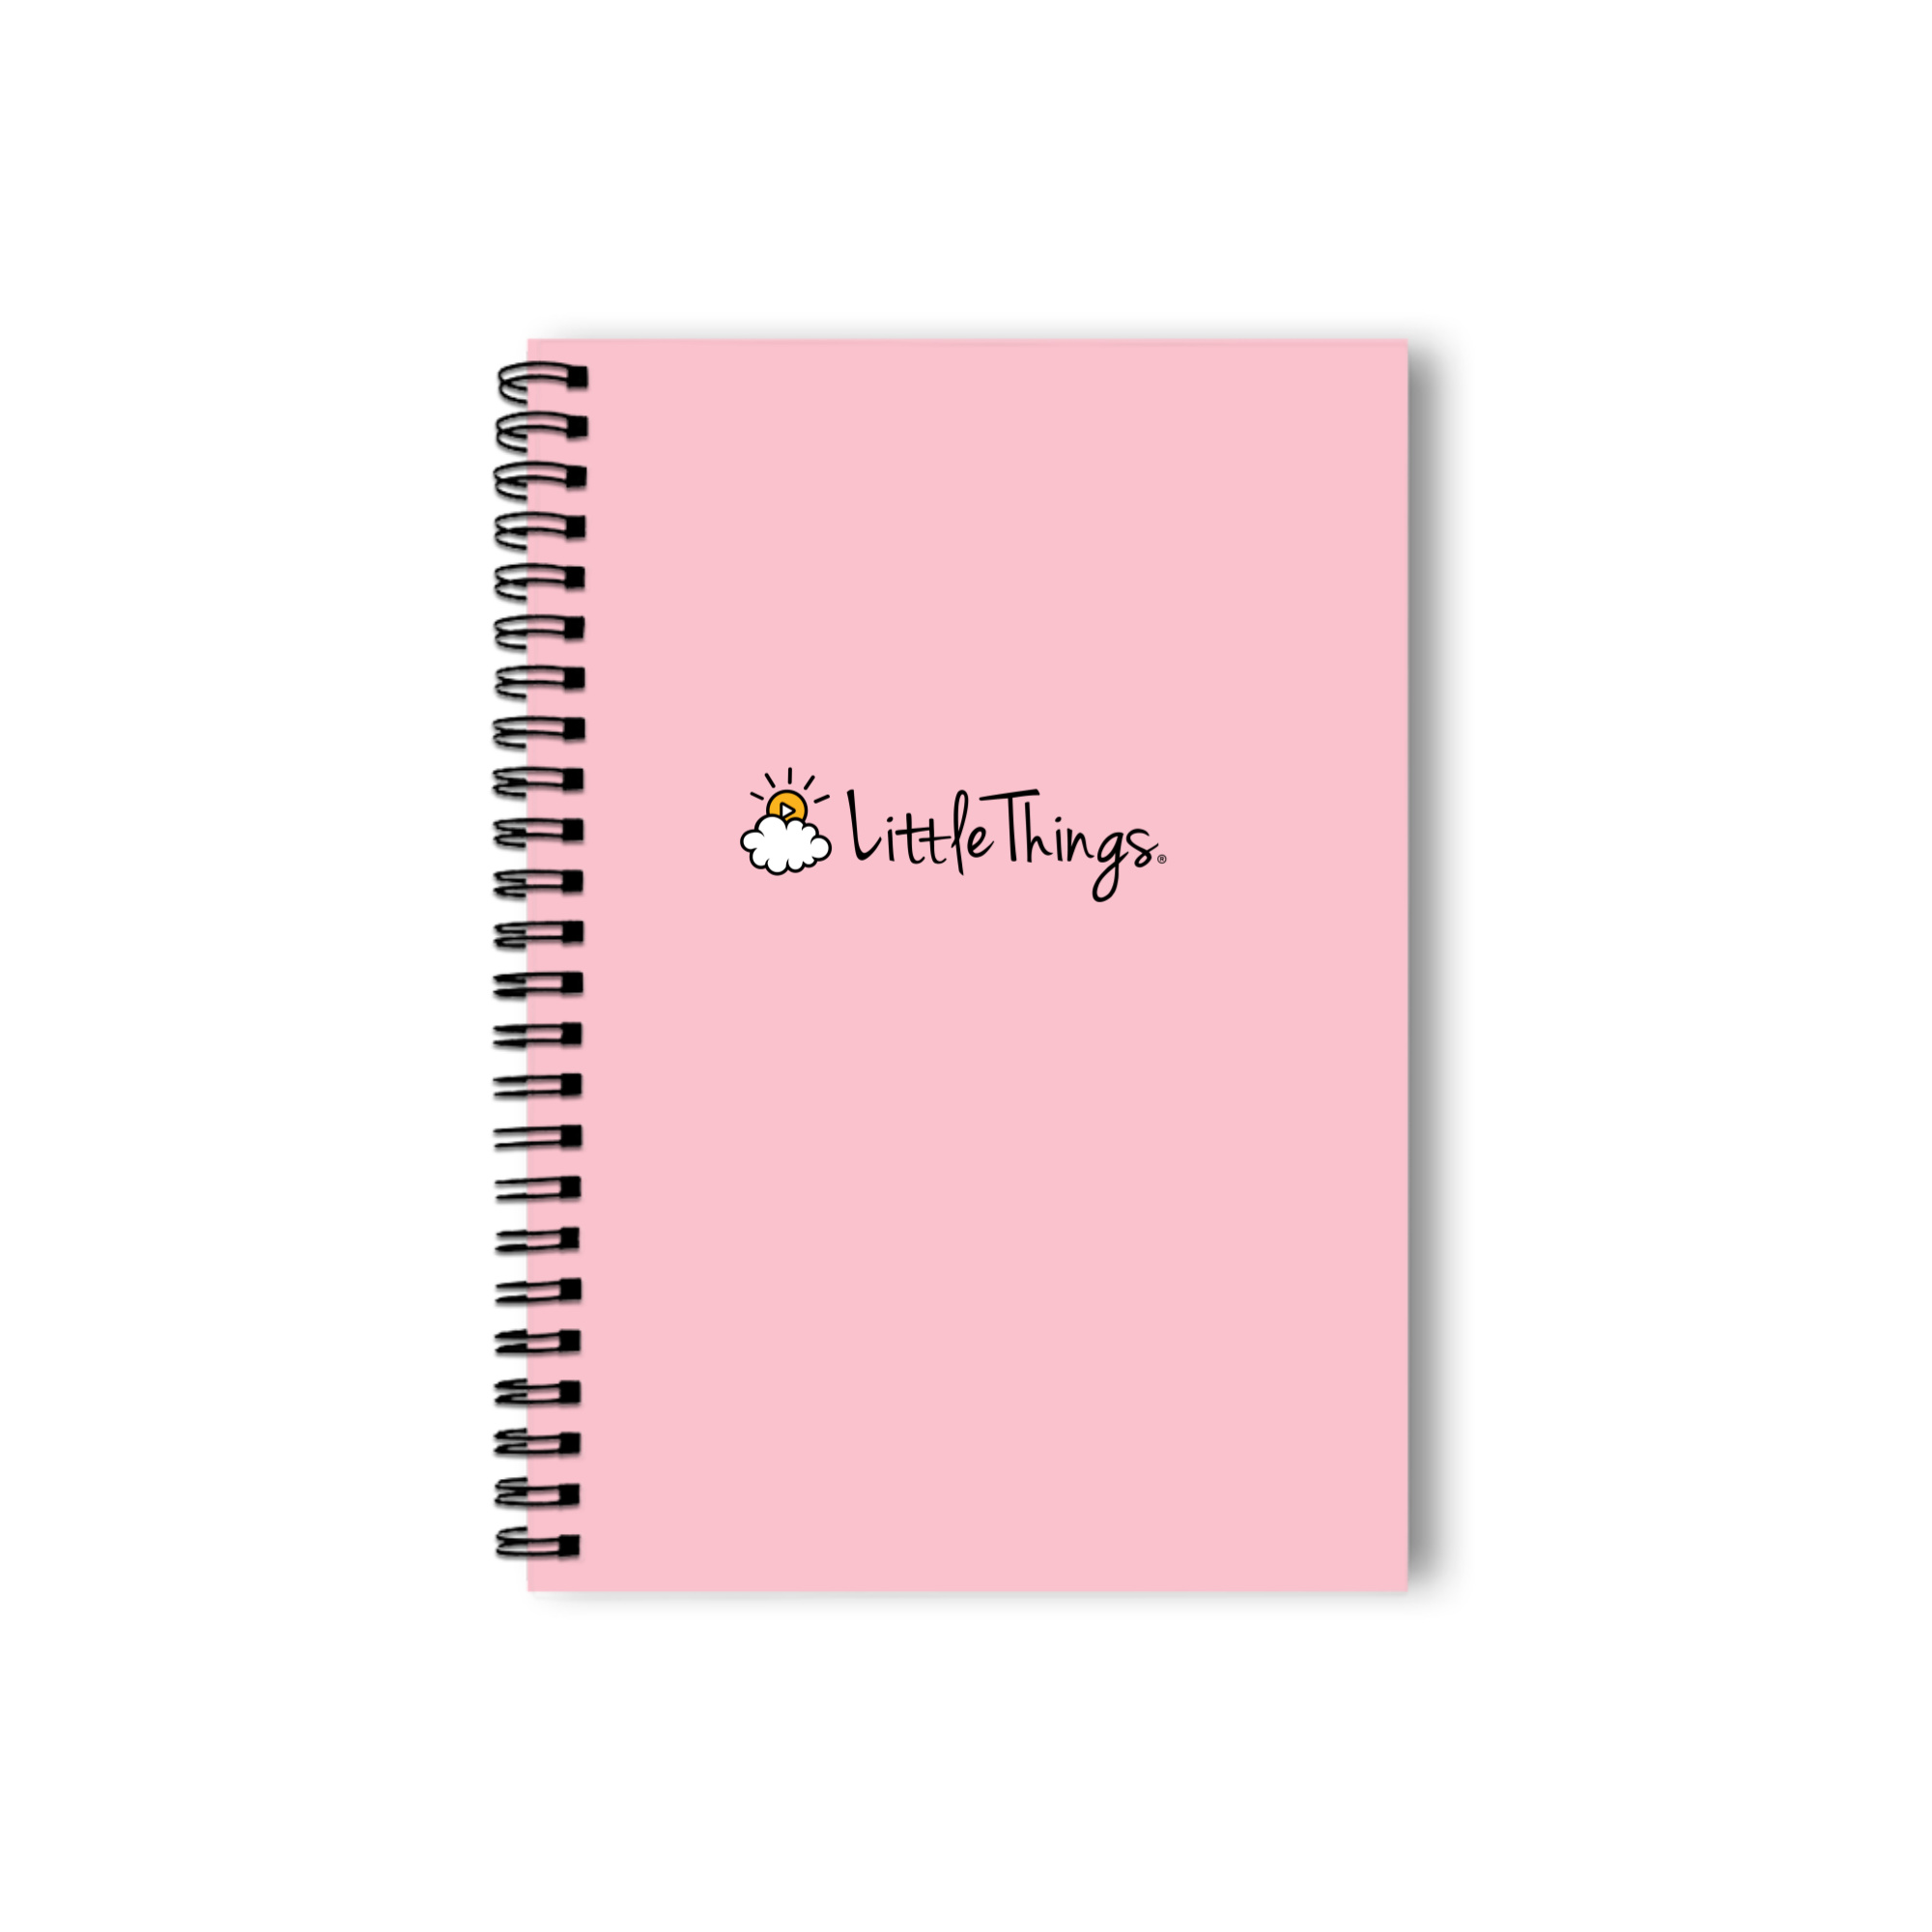 LittleThings Notebook